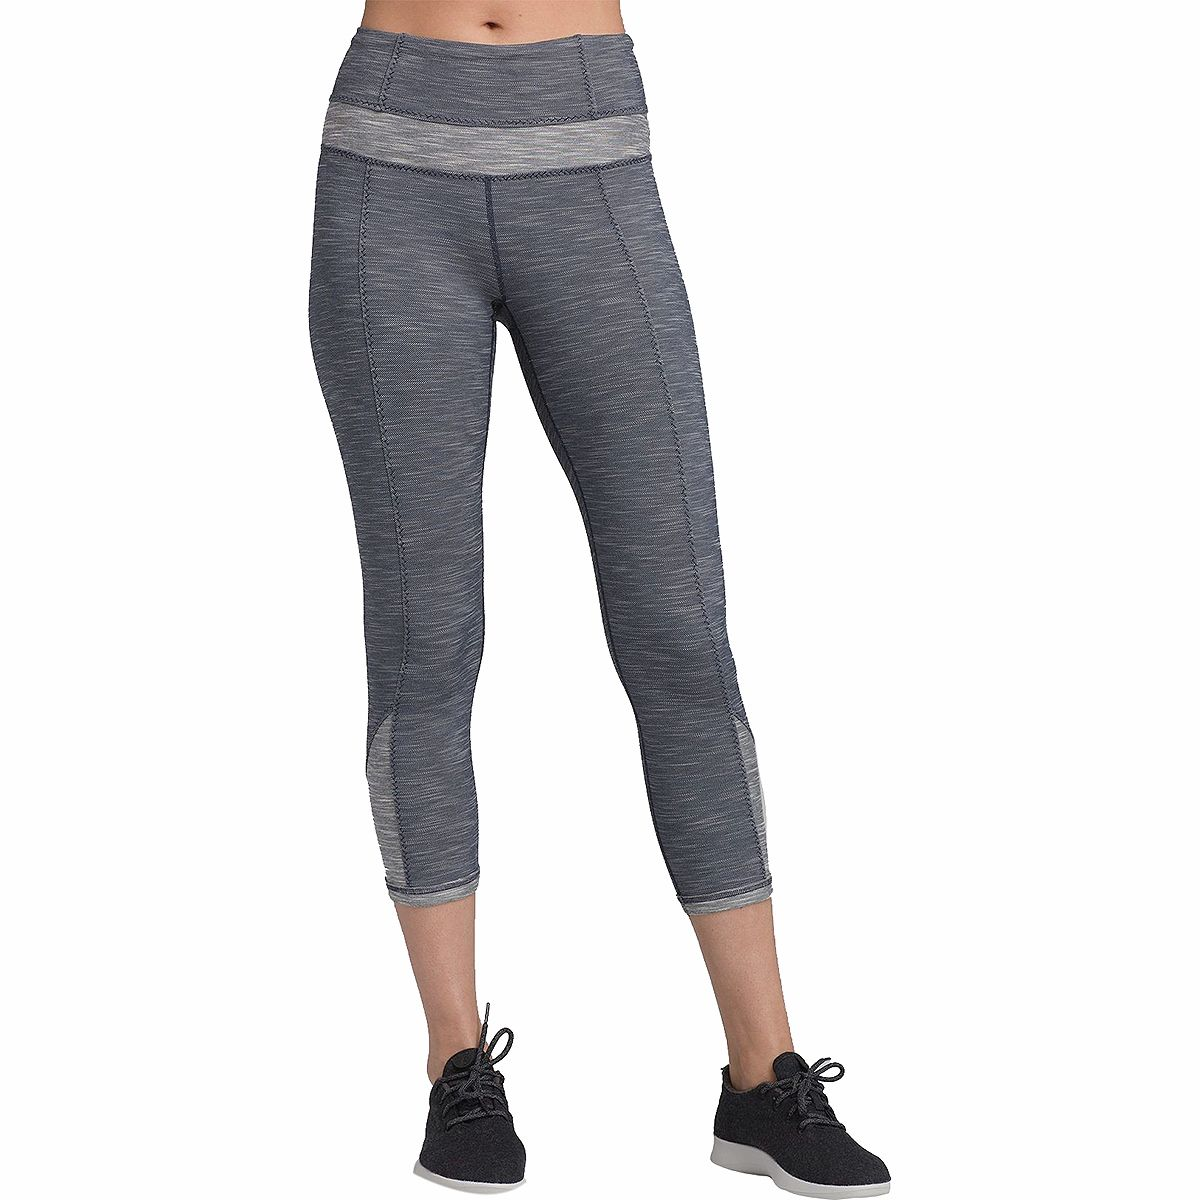 Fri Octopus Halobios Athletic Compression Pants//Yoga Pants Cycling Pants Fitness Worker High Rise